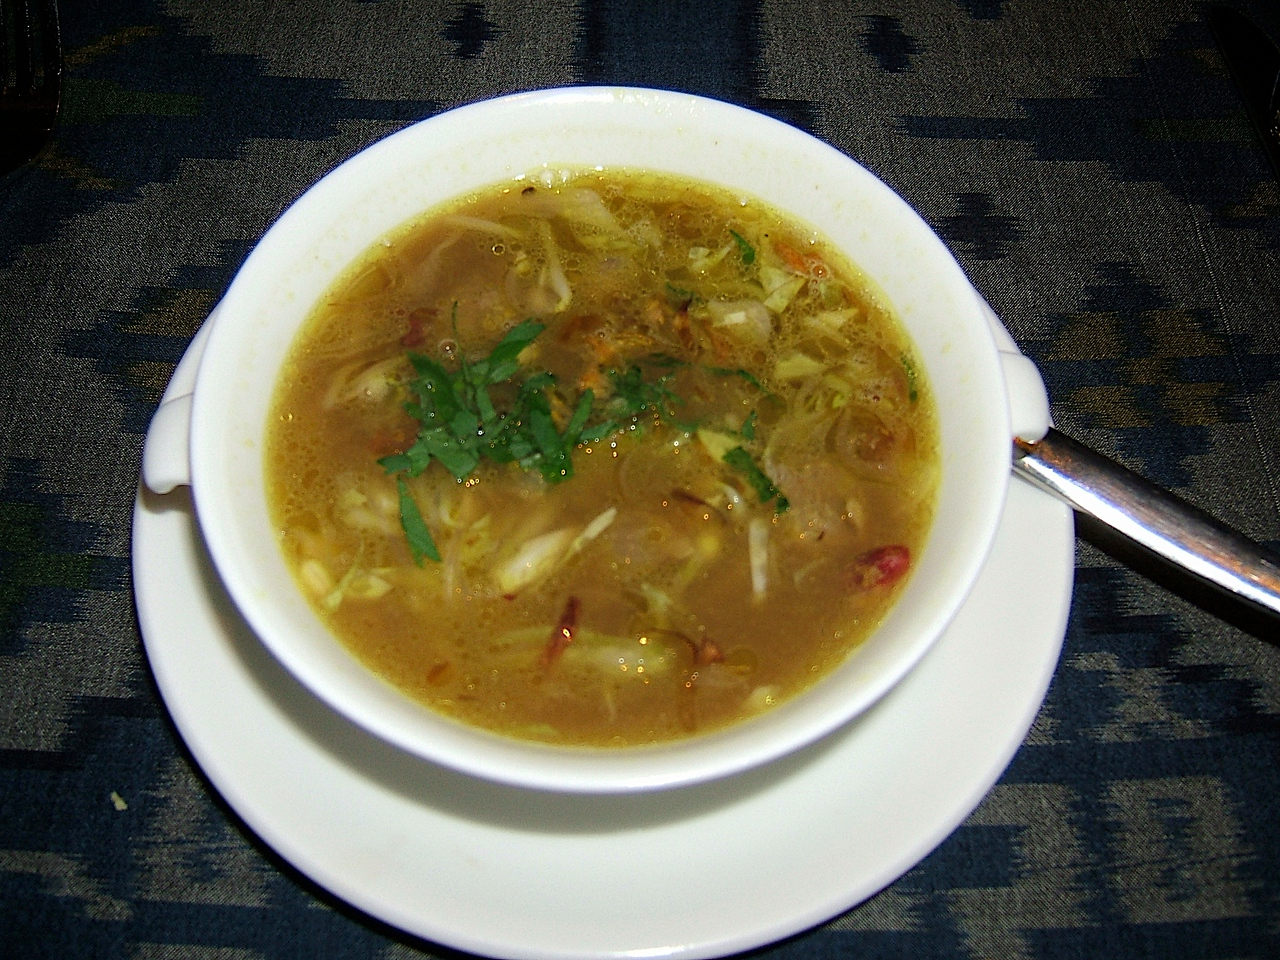 Lemongrass soup with suckling pig.